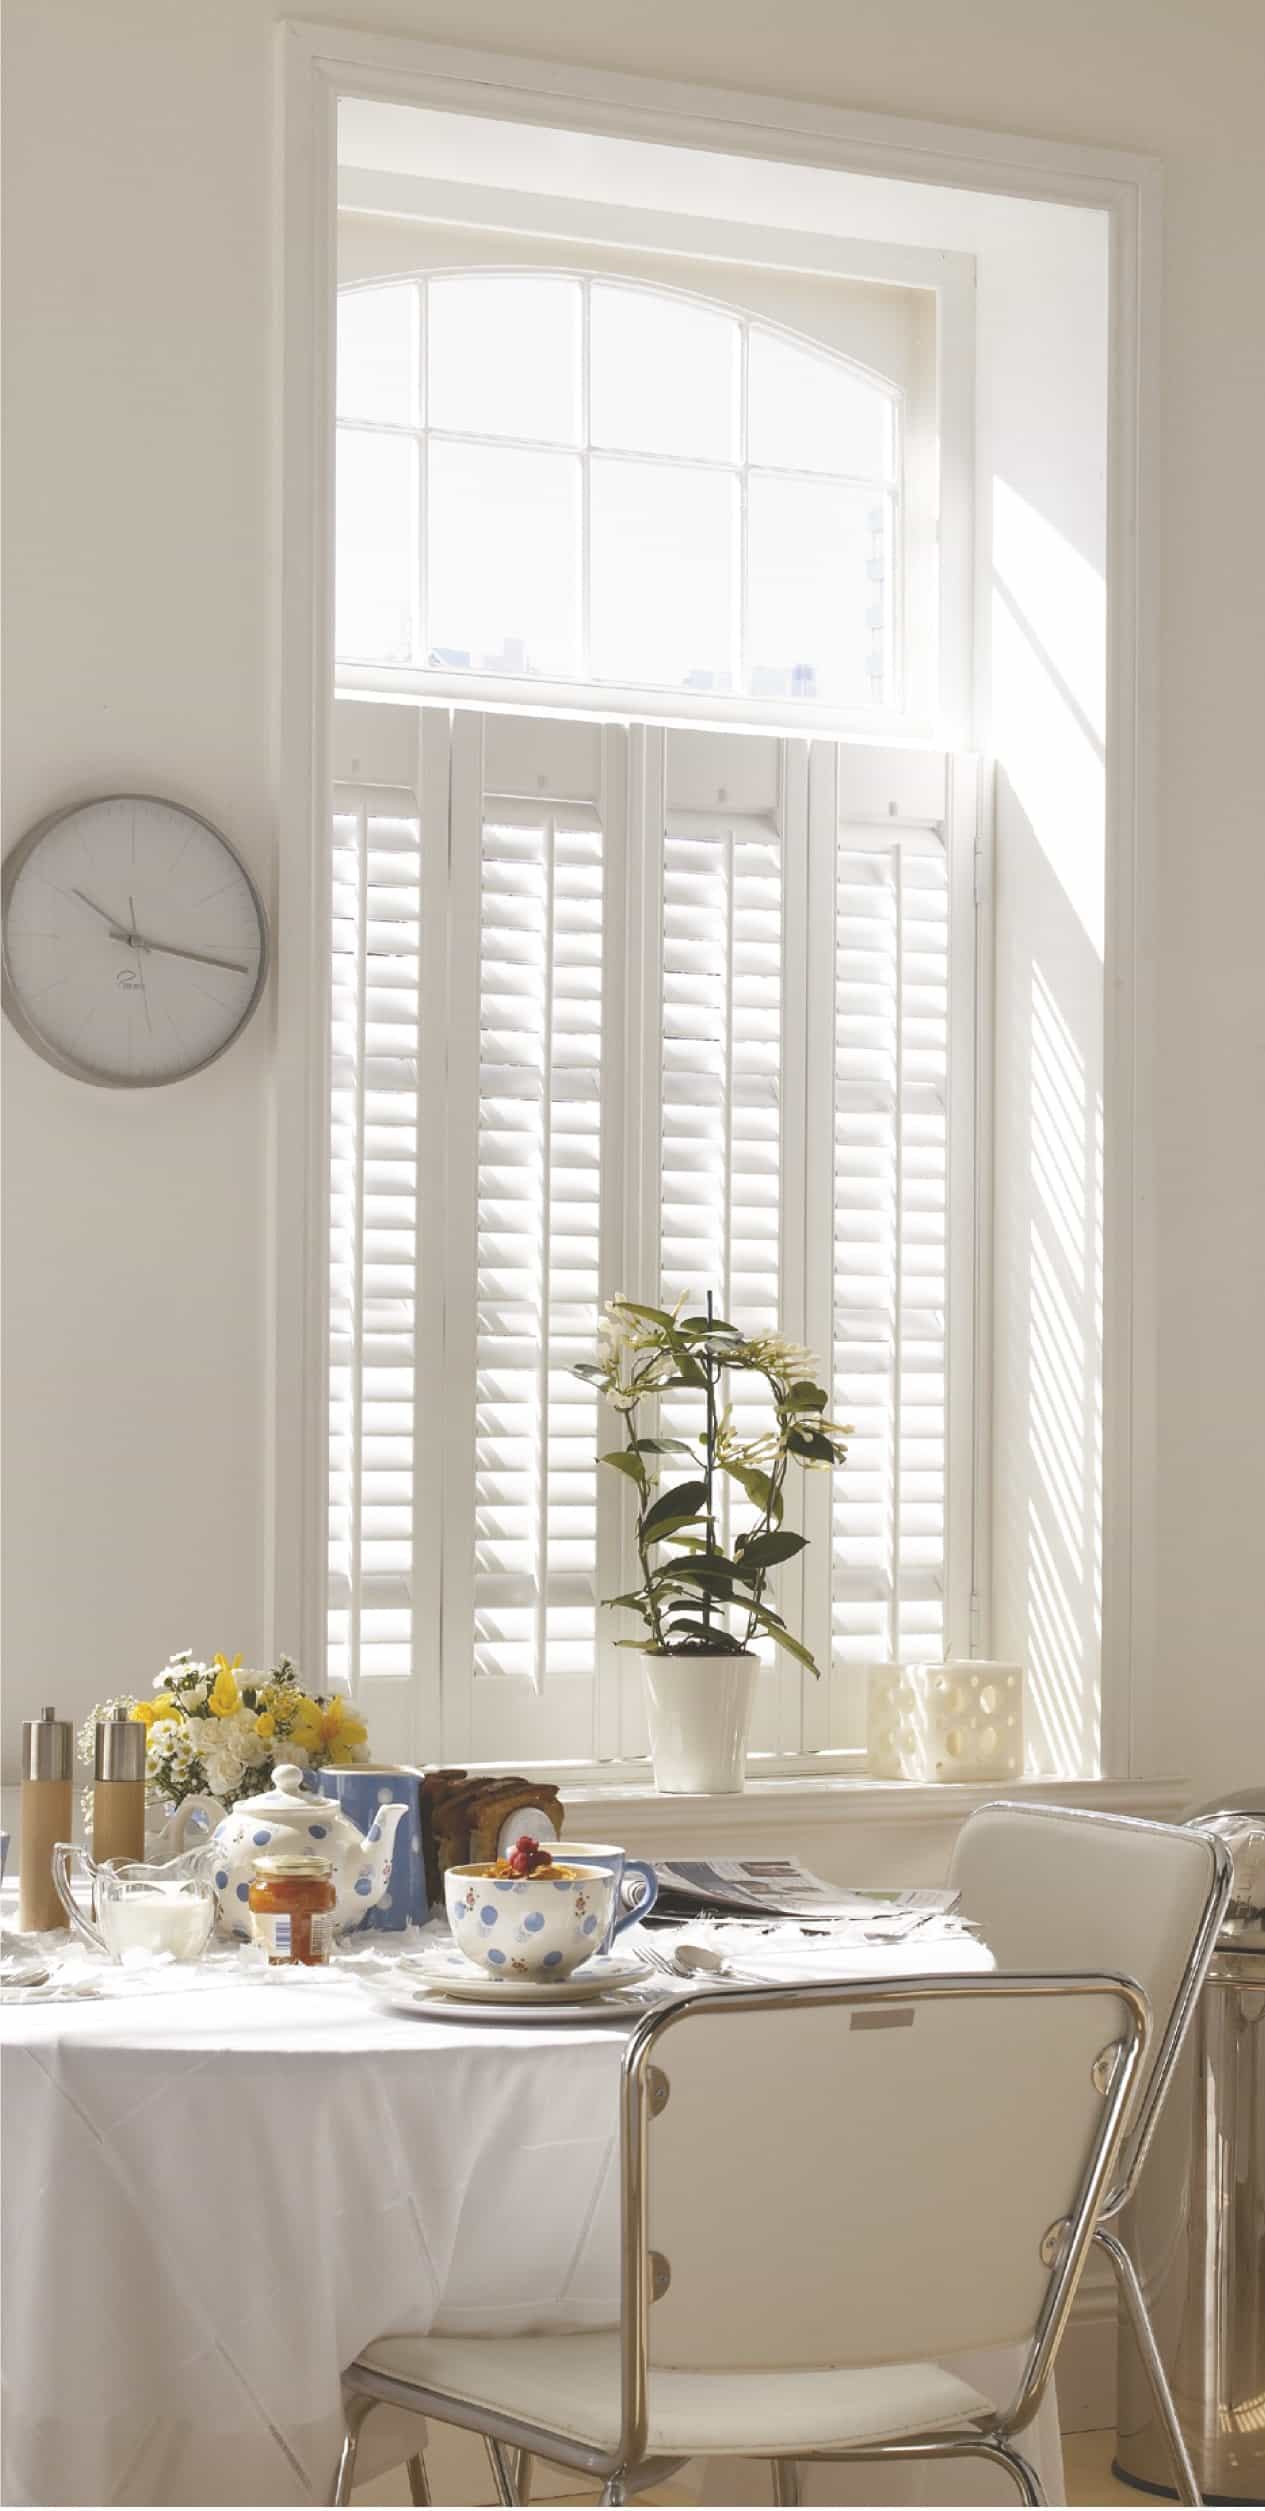 Exterior: Windows With Plantation Shutters Middlesbrough